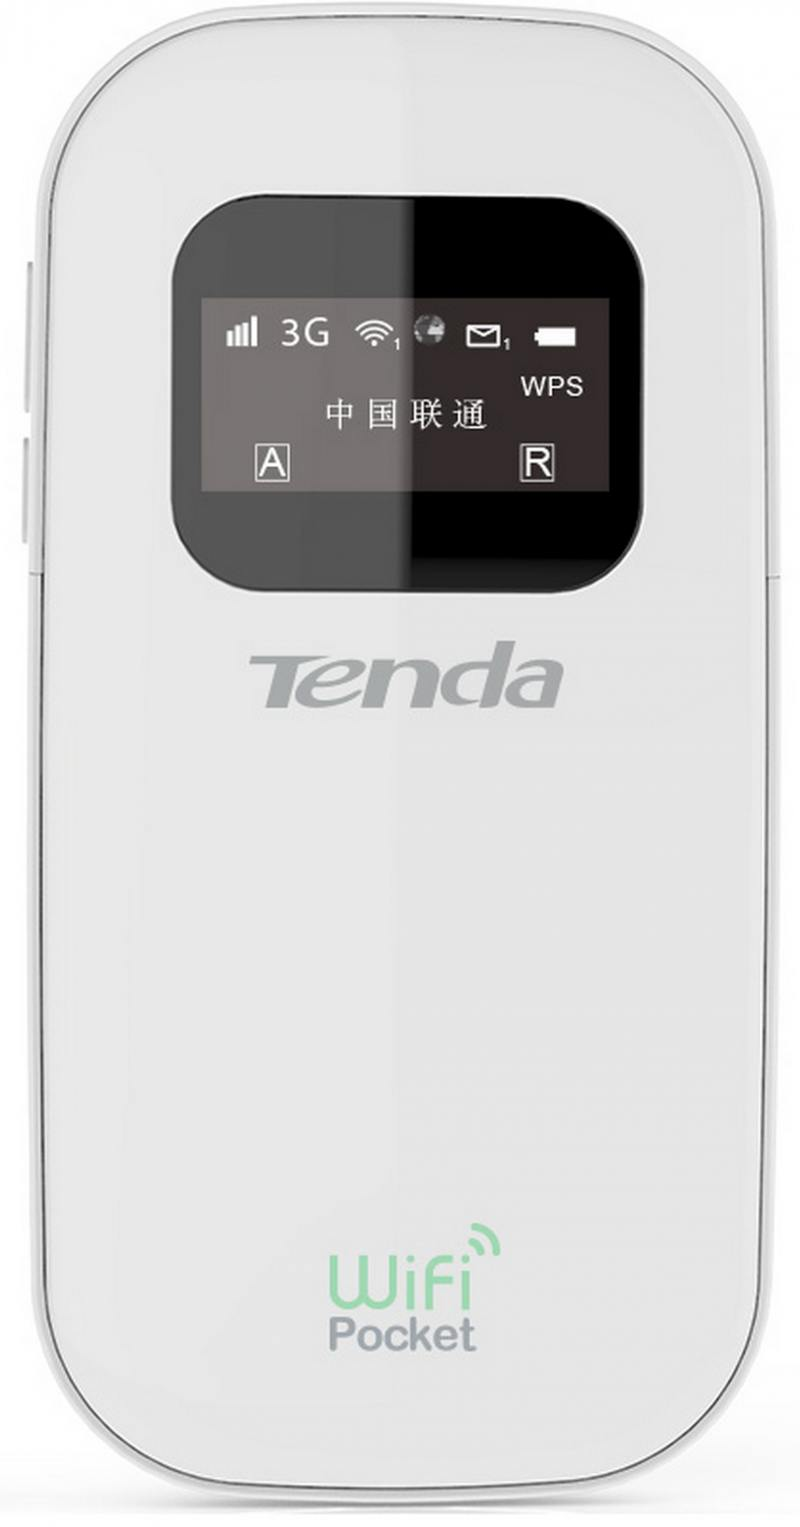 все цены на Точка доступа Tenda 3G185 3G портативныый Wi–Fi роутер со слотом для SIM-карт онлайн